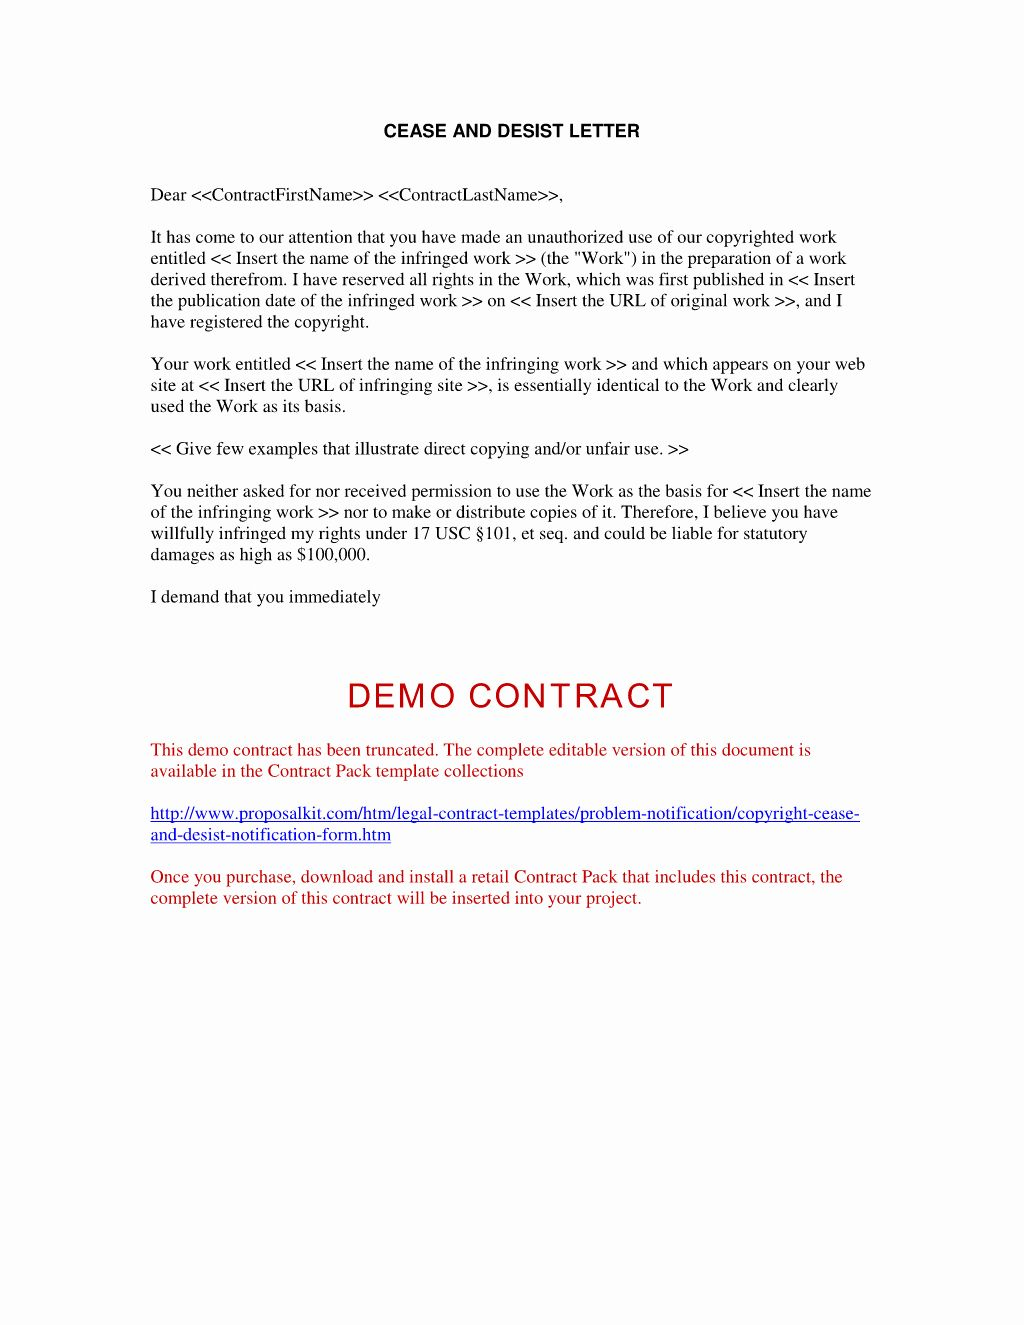 The charming Cease And Desist Letter Sample